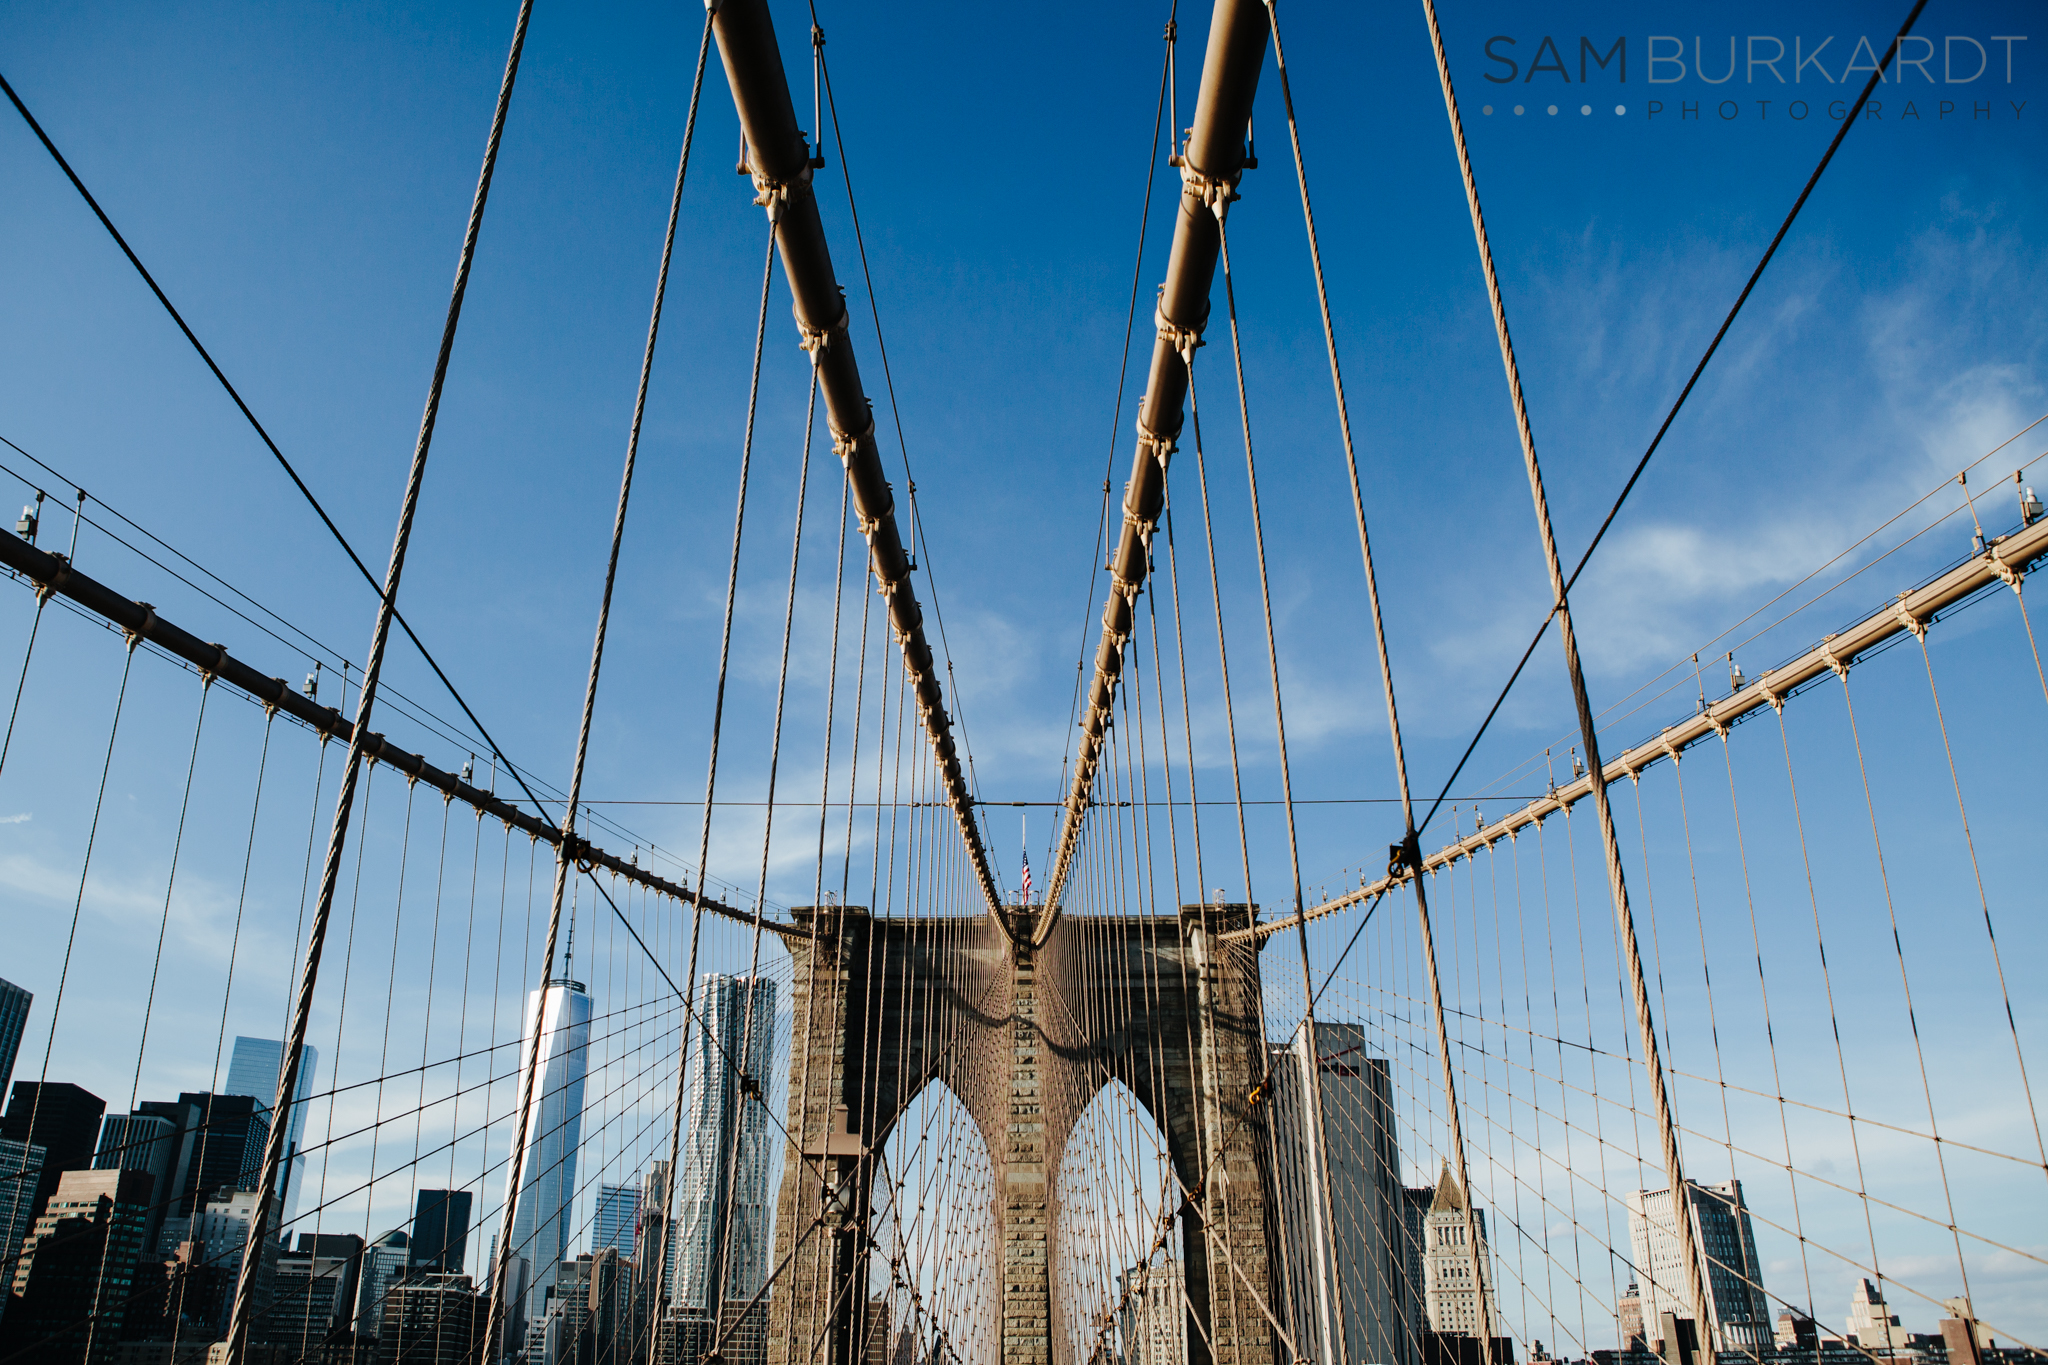 samburkardt_brooklyn_bridge_new_york_engagement_proposal_skyline_0016.jpg